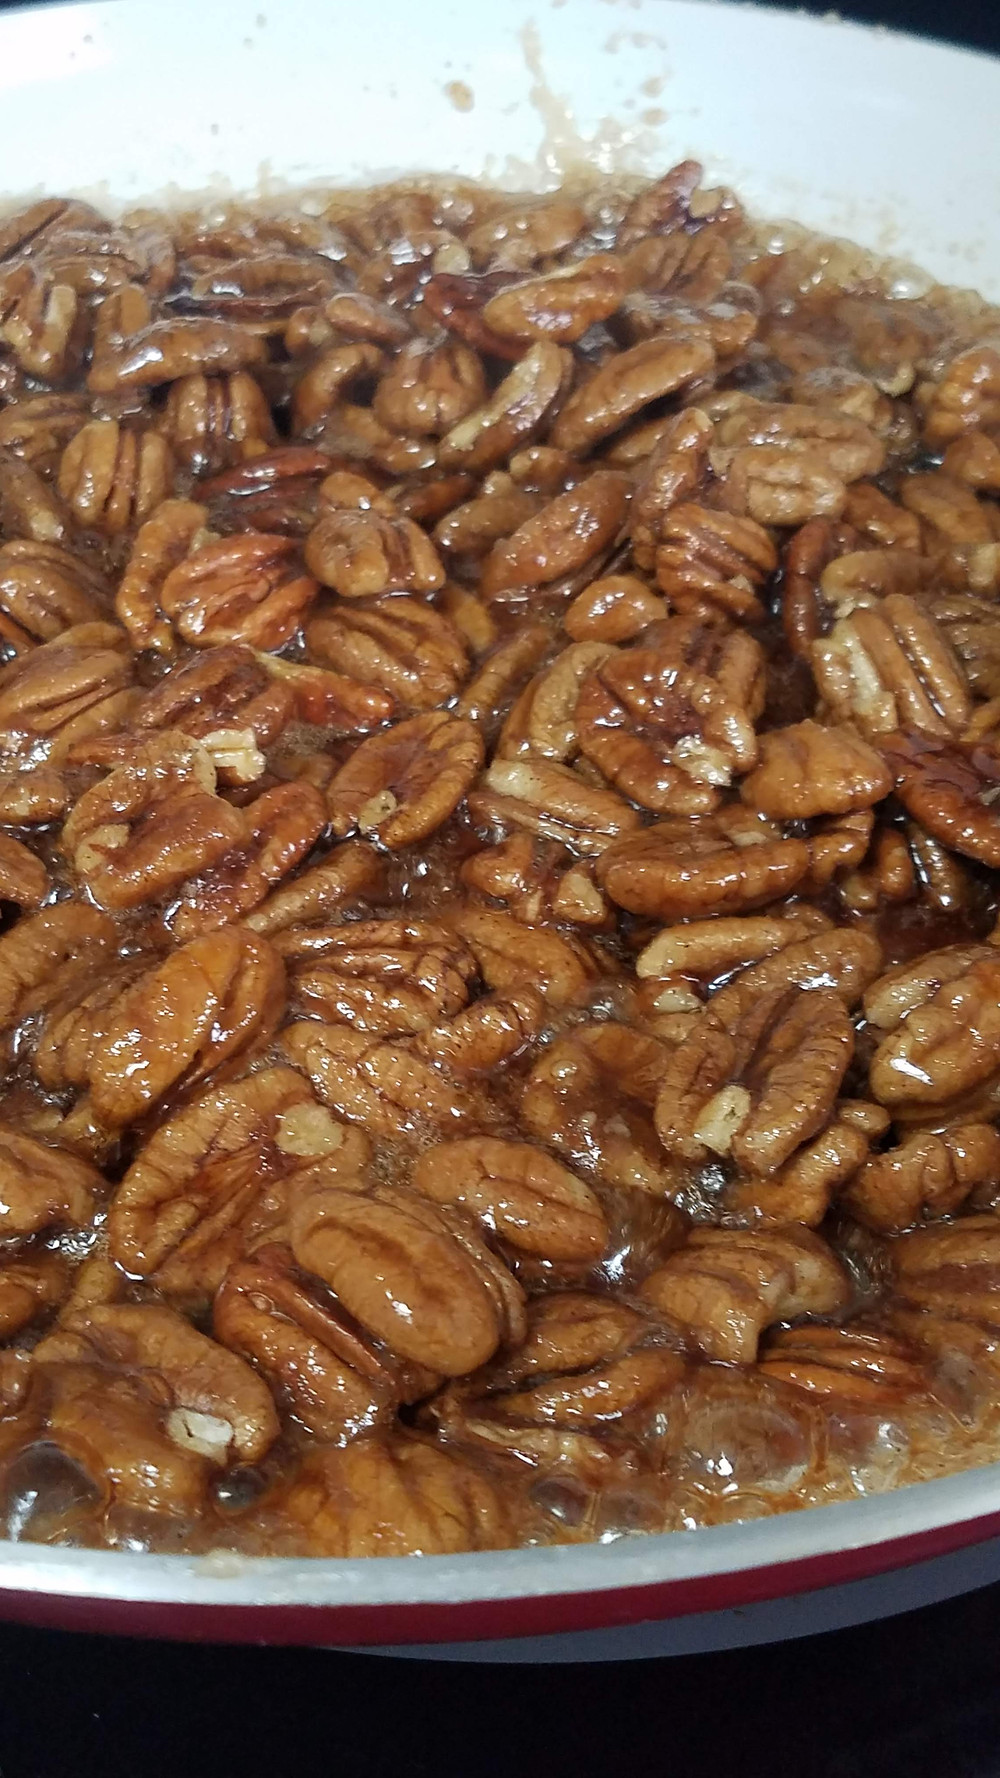 Make sure the pecans are covered in sugar glaze.